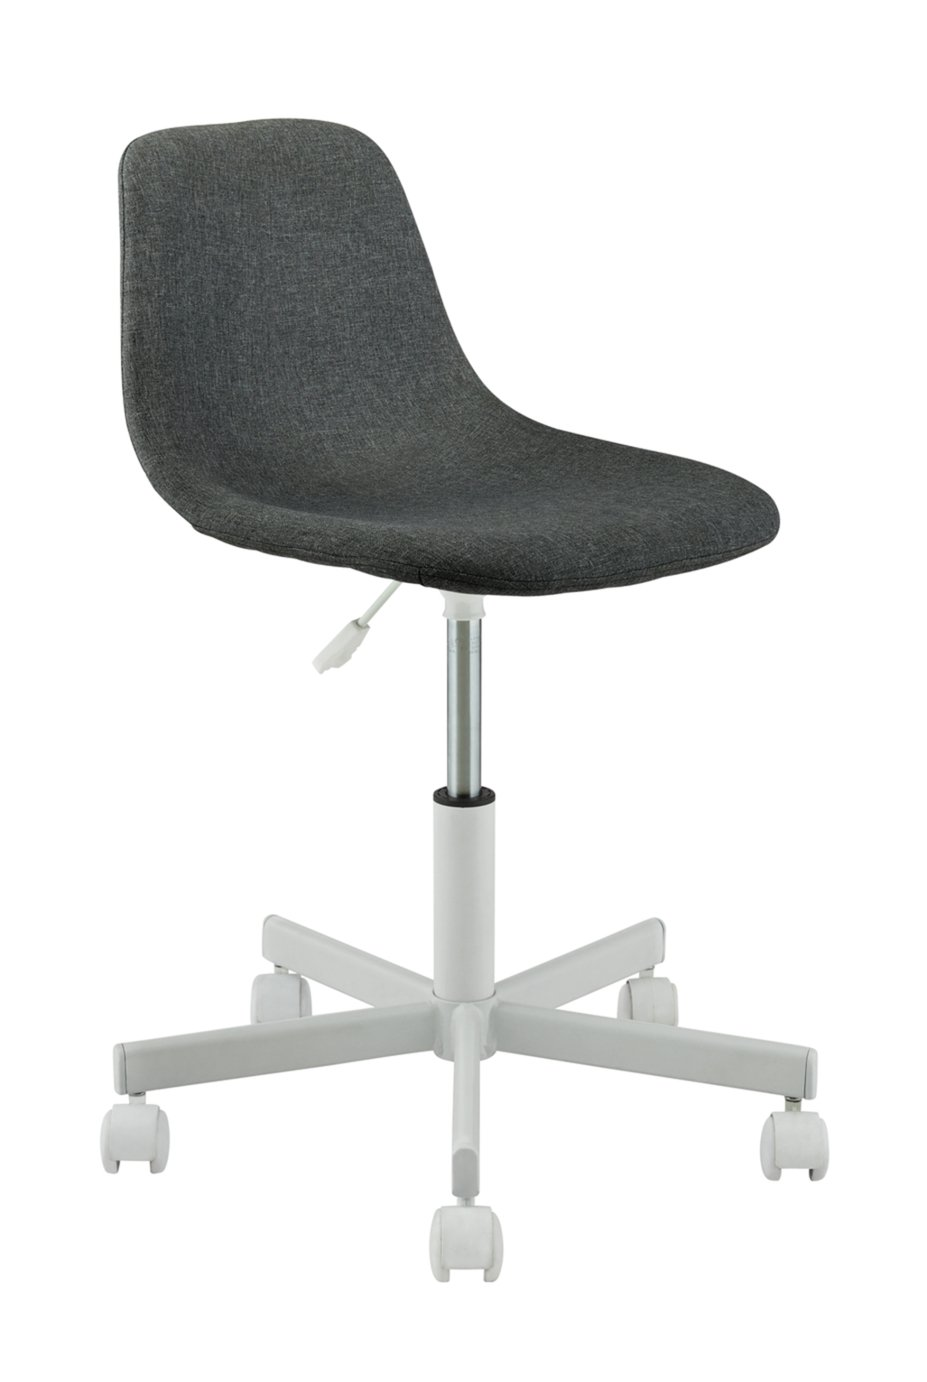 Argos Home Grayson Shell Chair - Grey